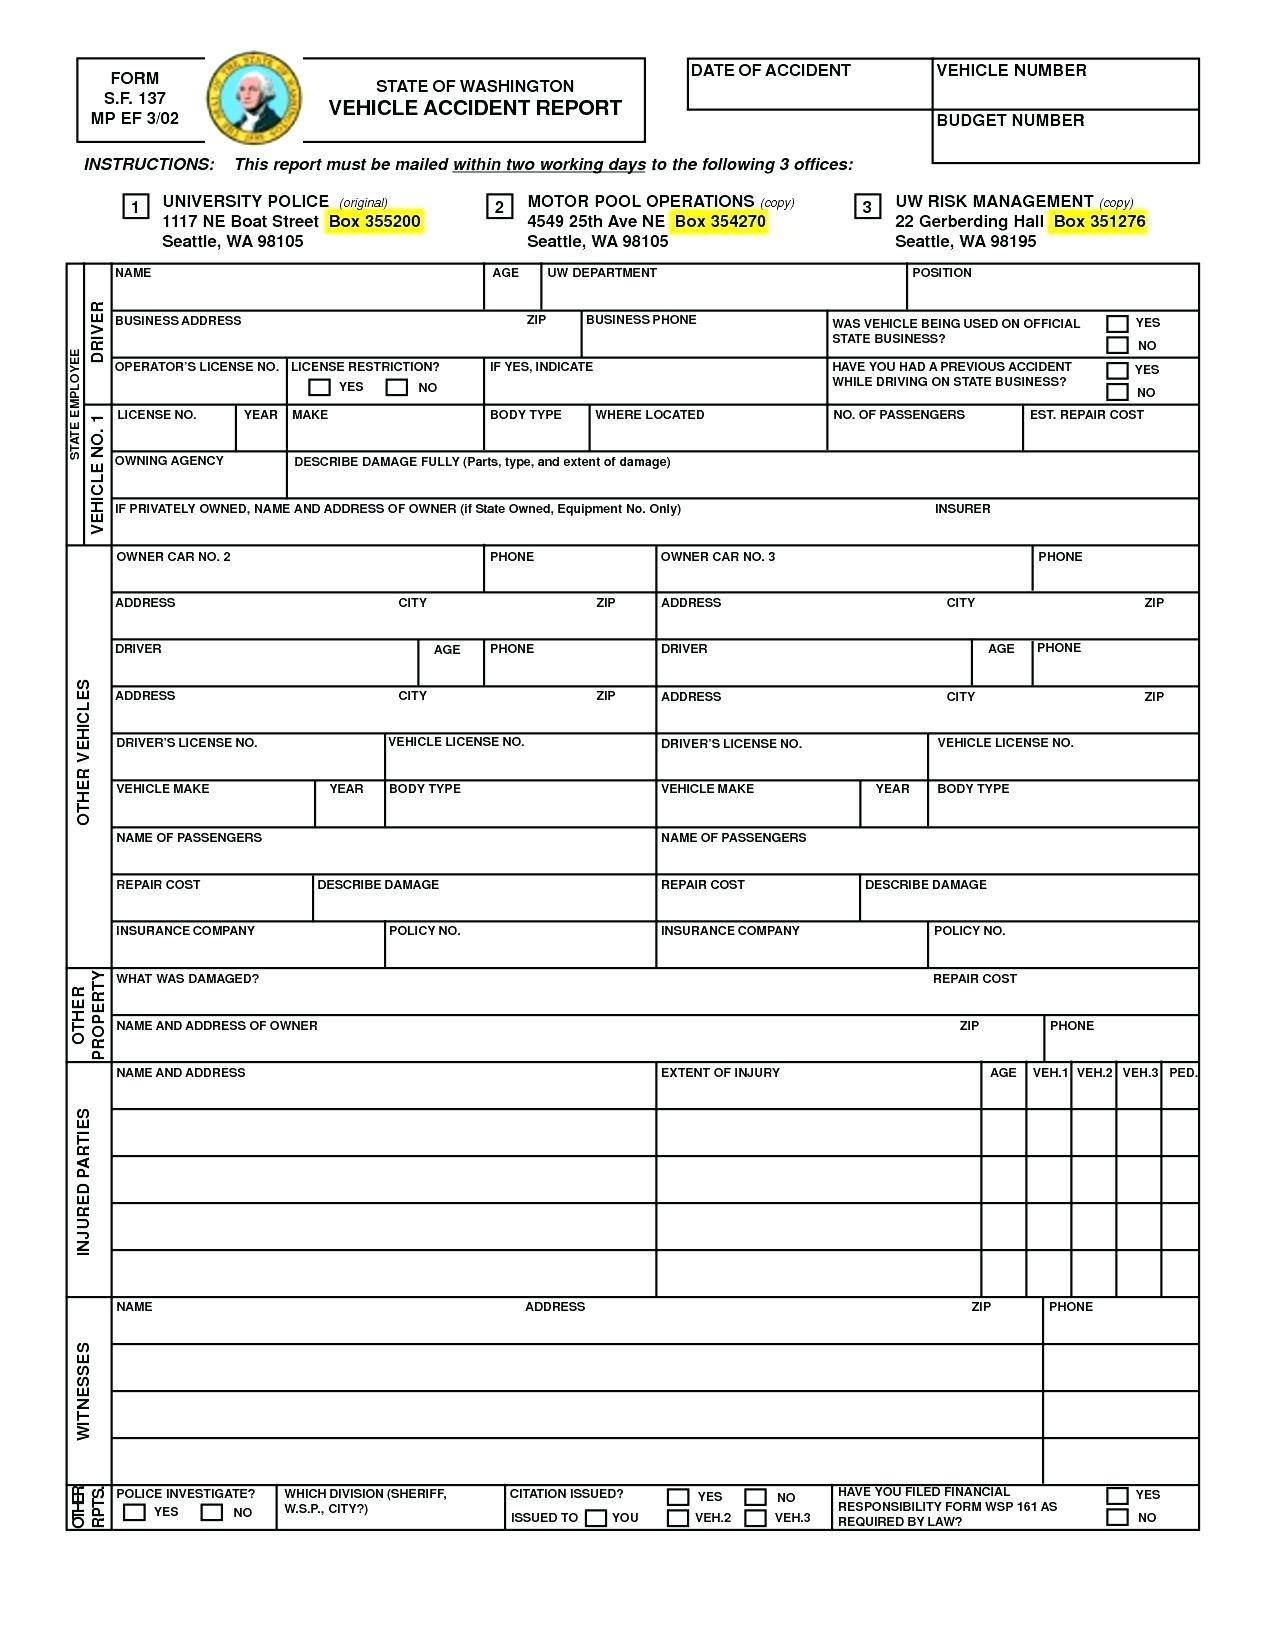 Vehicle Accident Report Form Template Doc